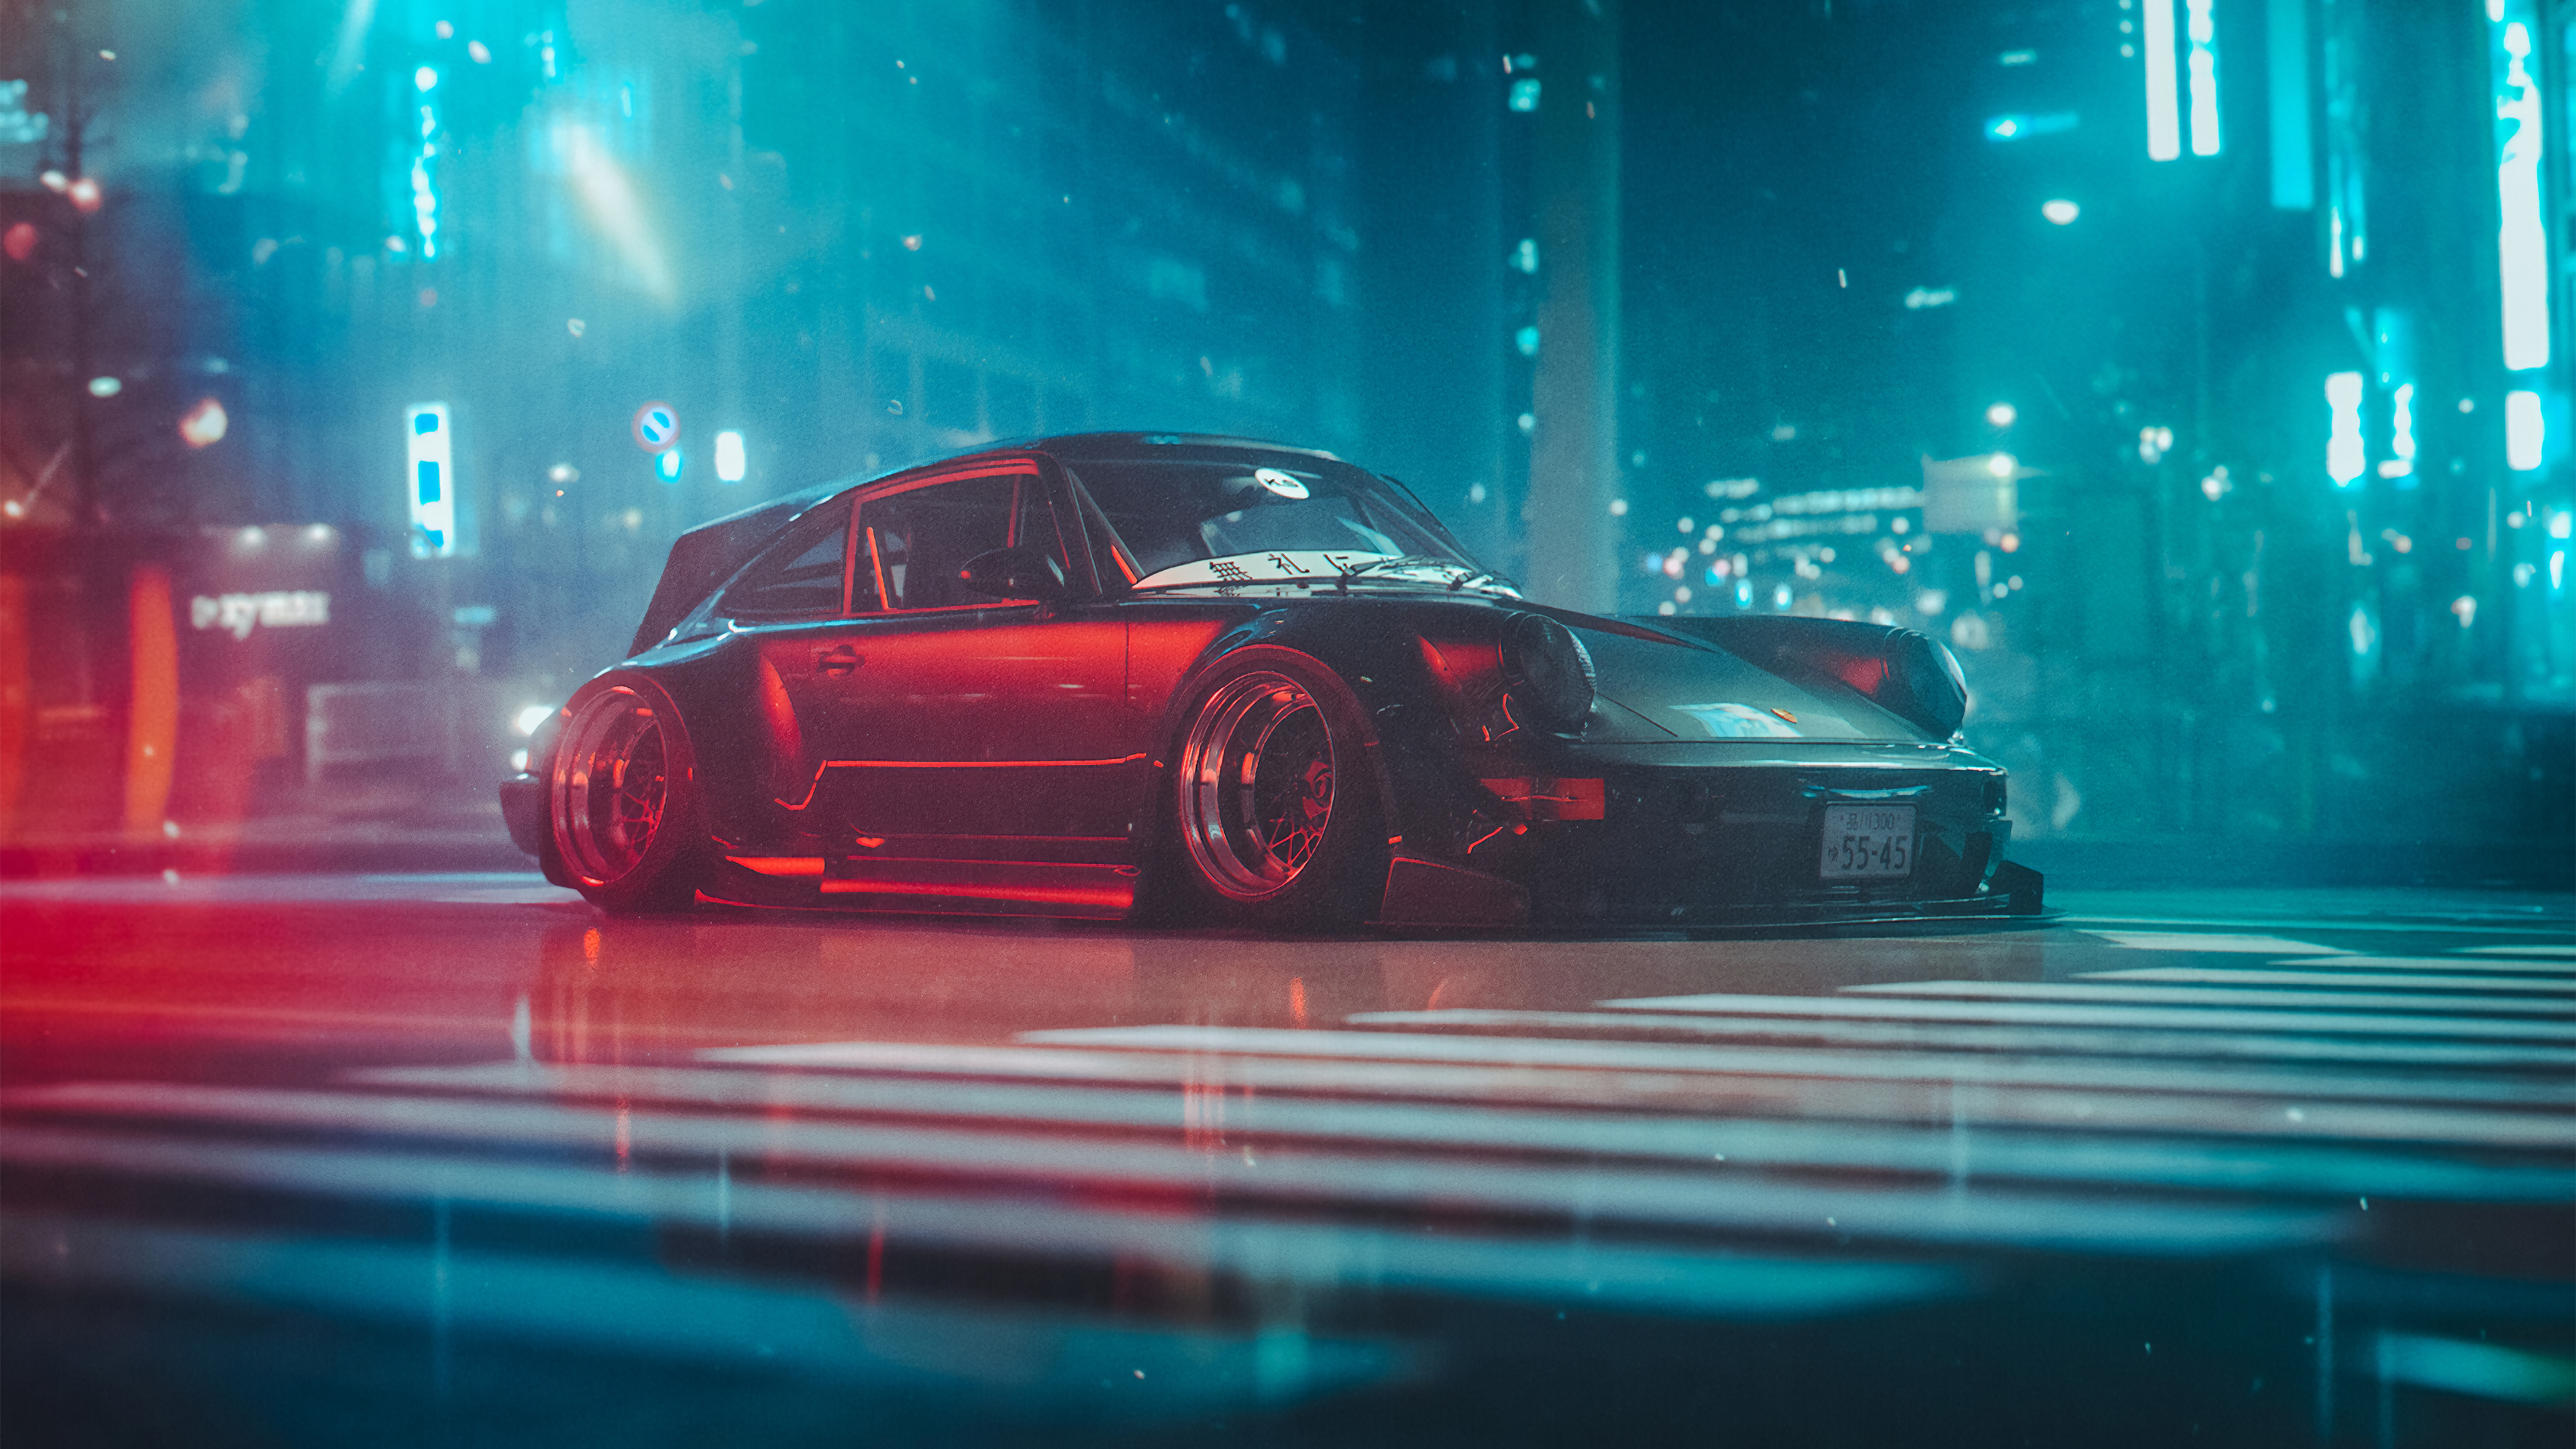 RWB 964 Wagon Khyzyl Saleem [3840x2160] wallpapers 3840x2160